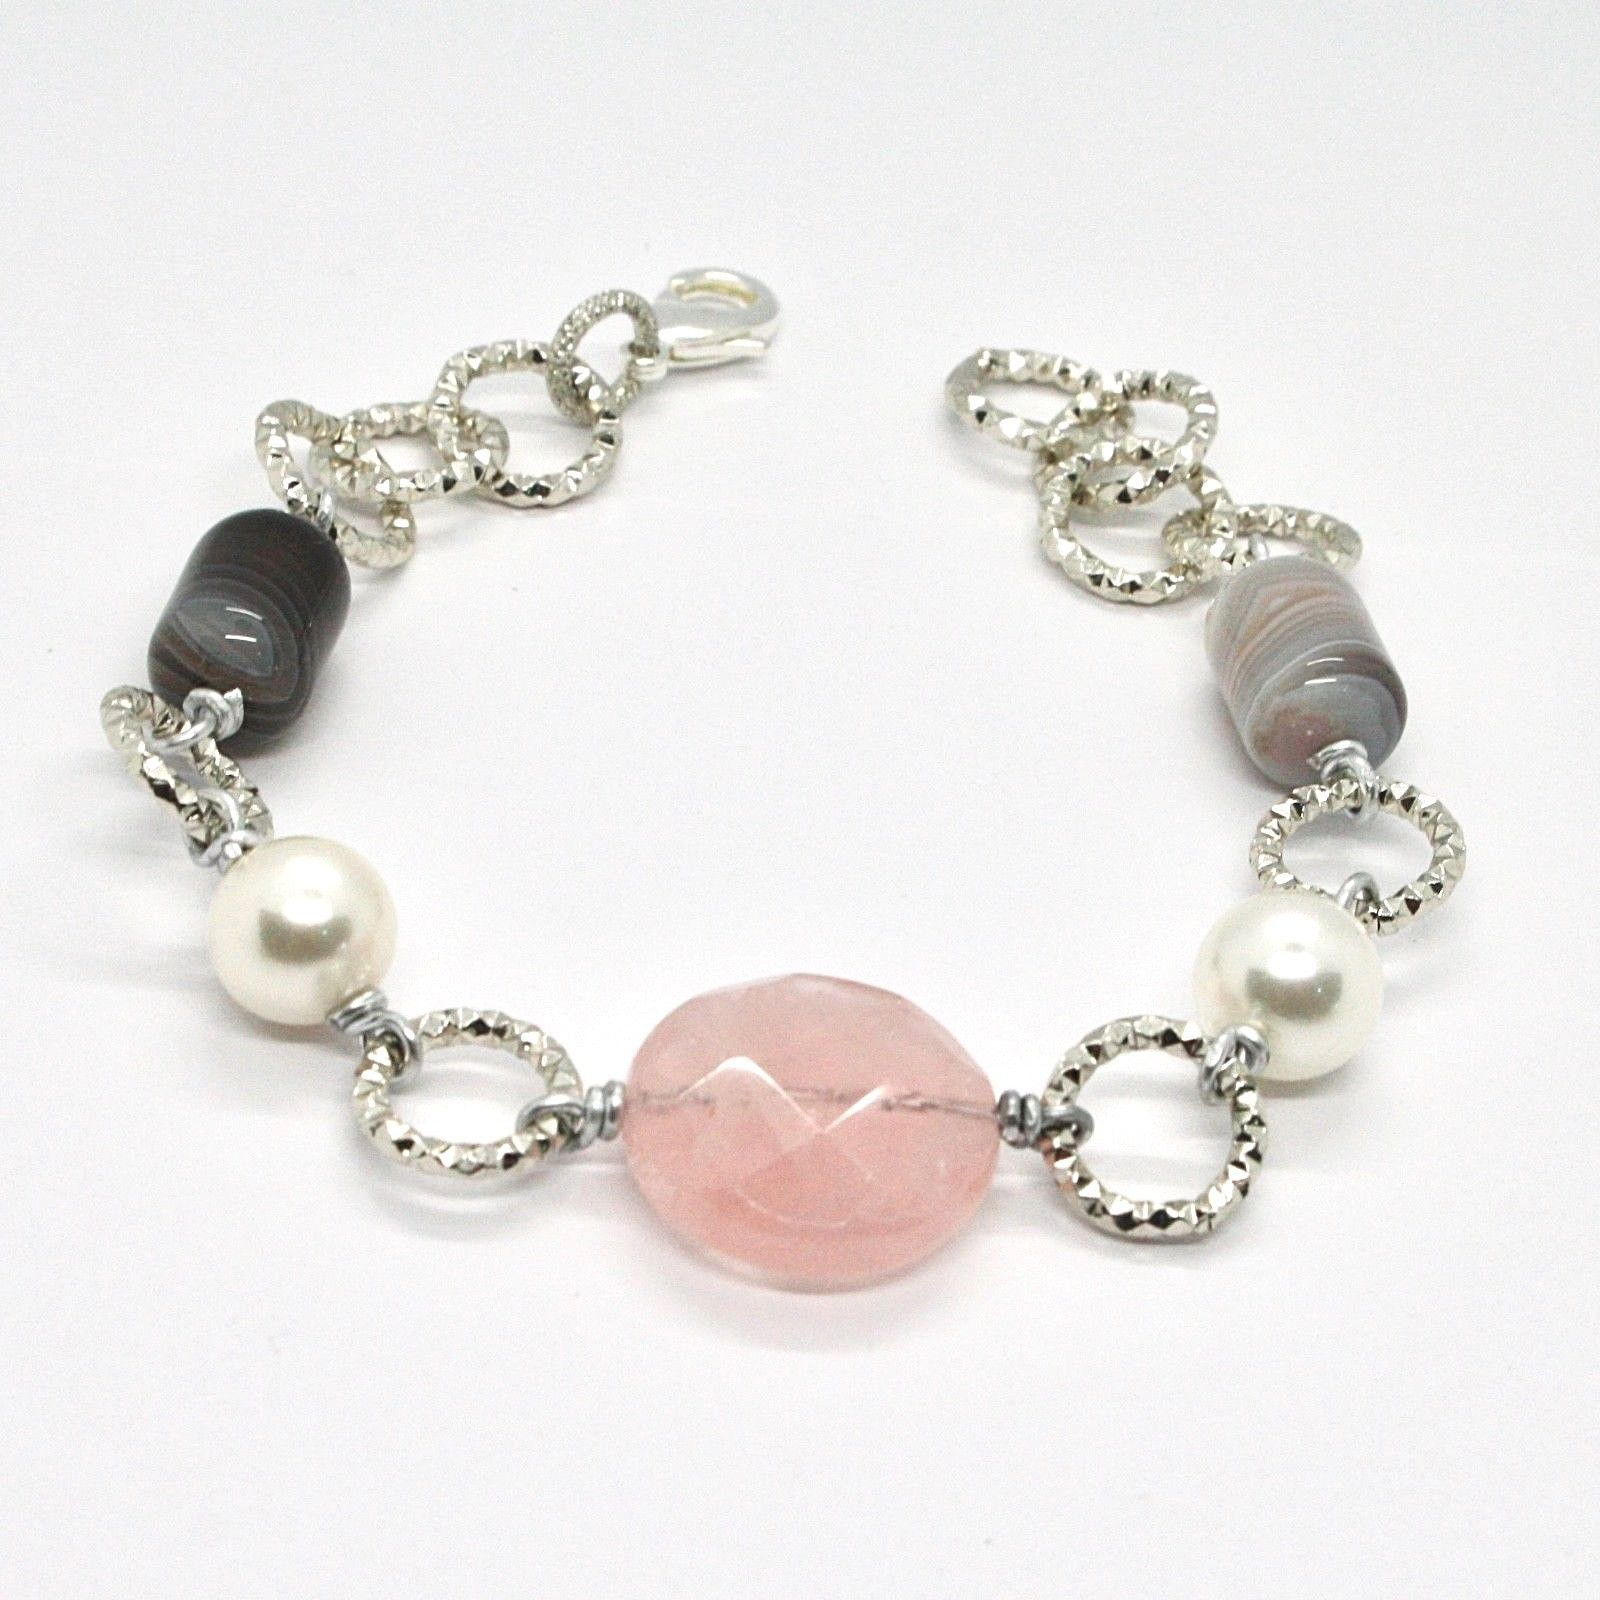 BRACELET THE ALUMINIUM LONG 21 CM WITH PINK QUARTZ CHALCEDONY AND PEARLS